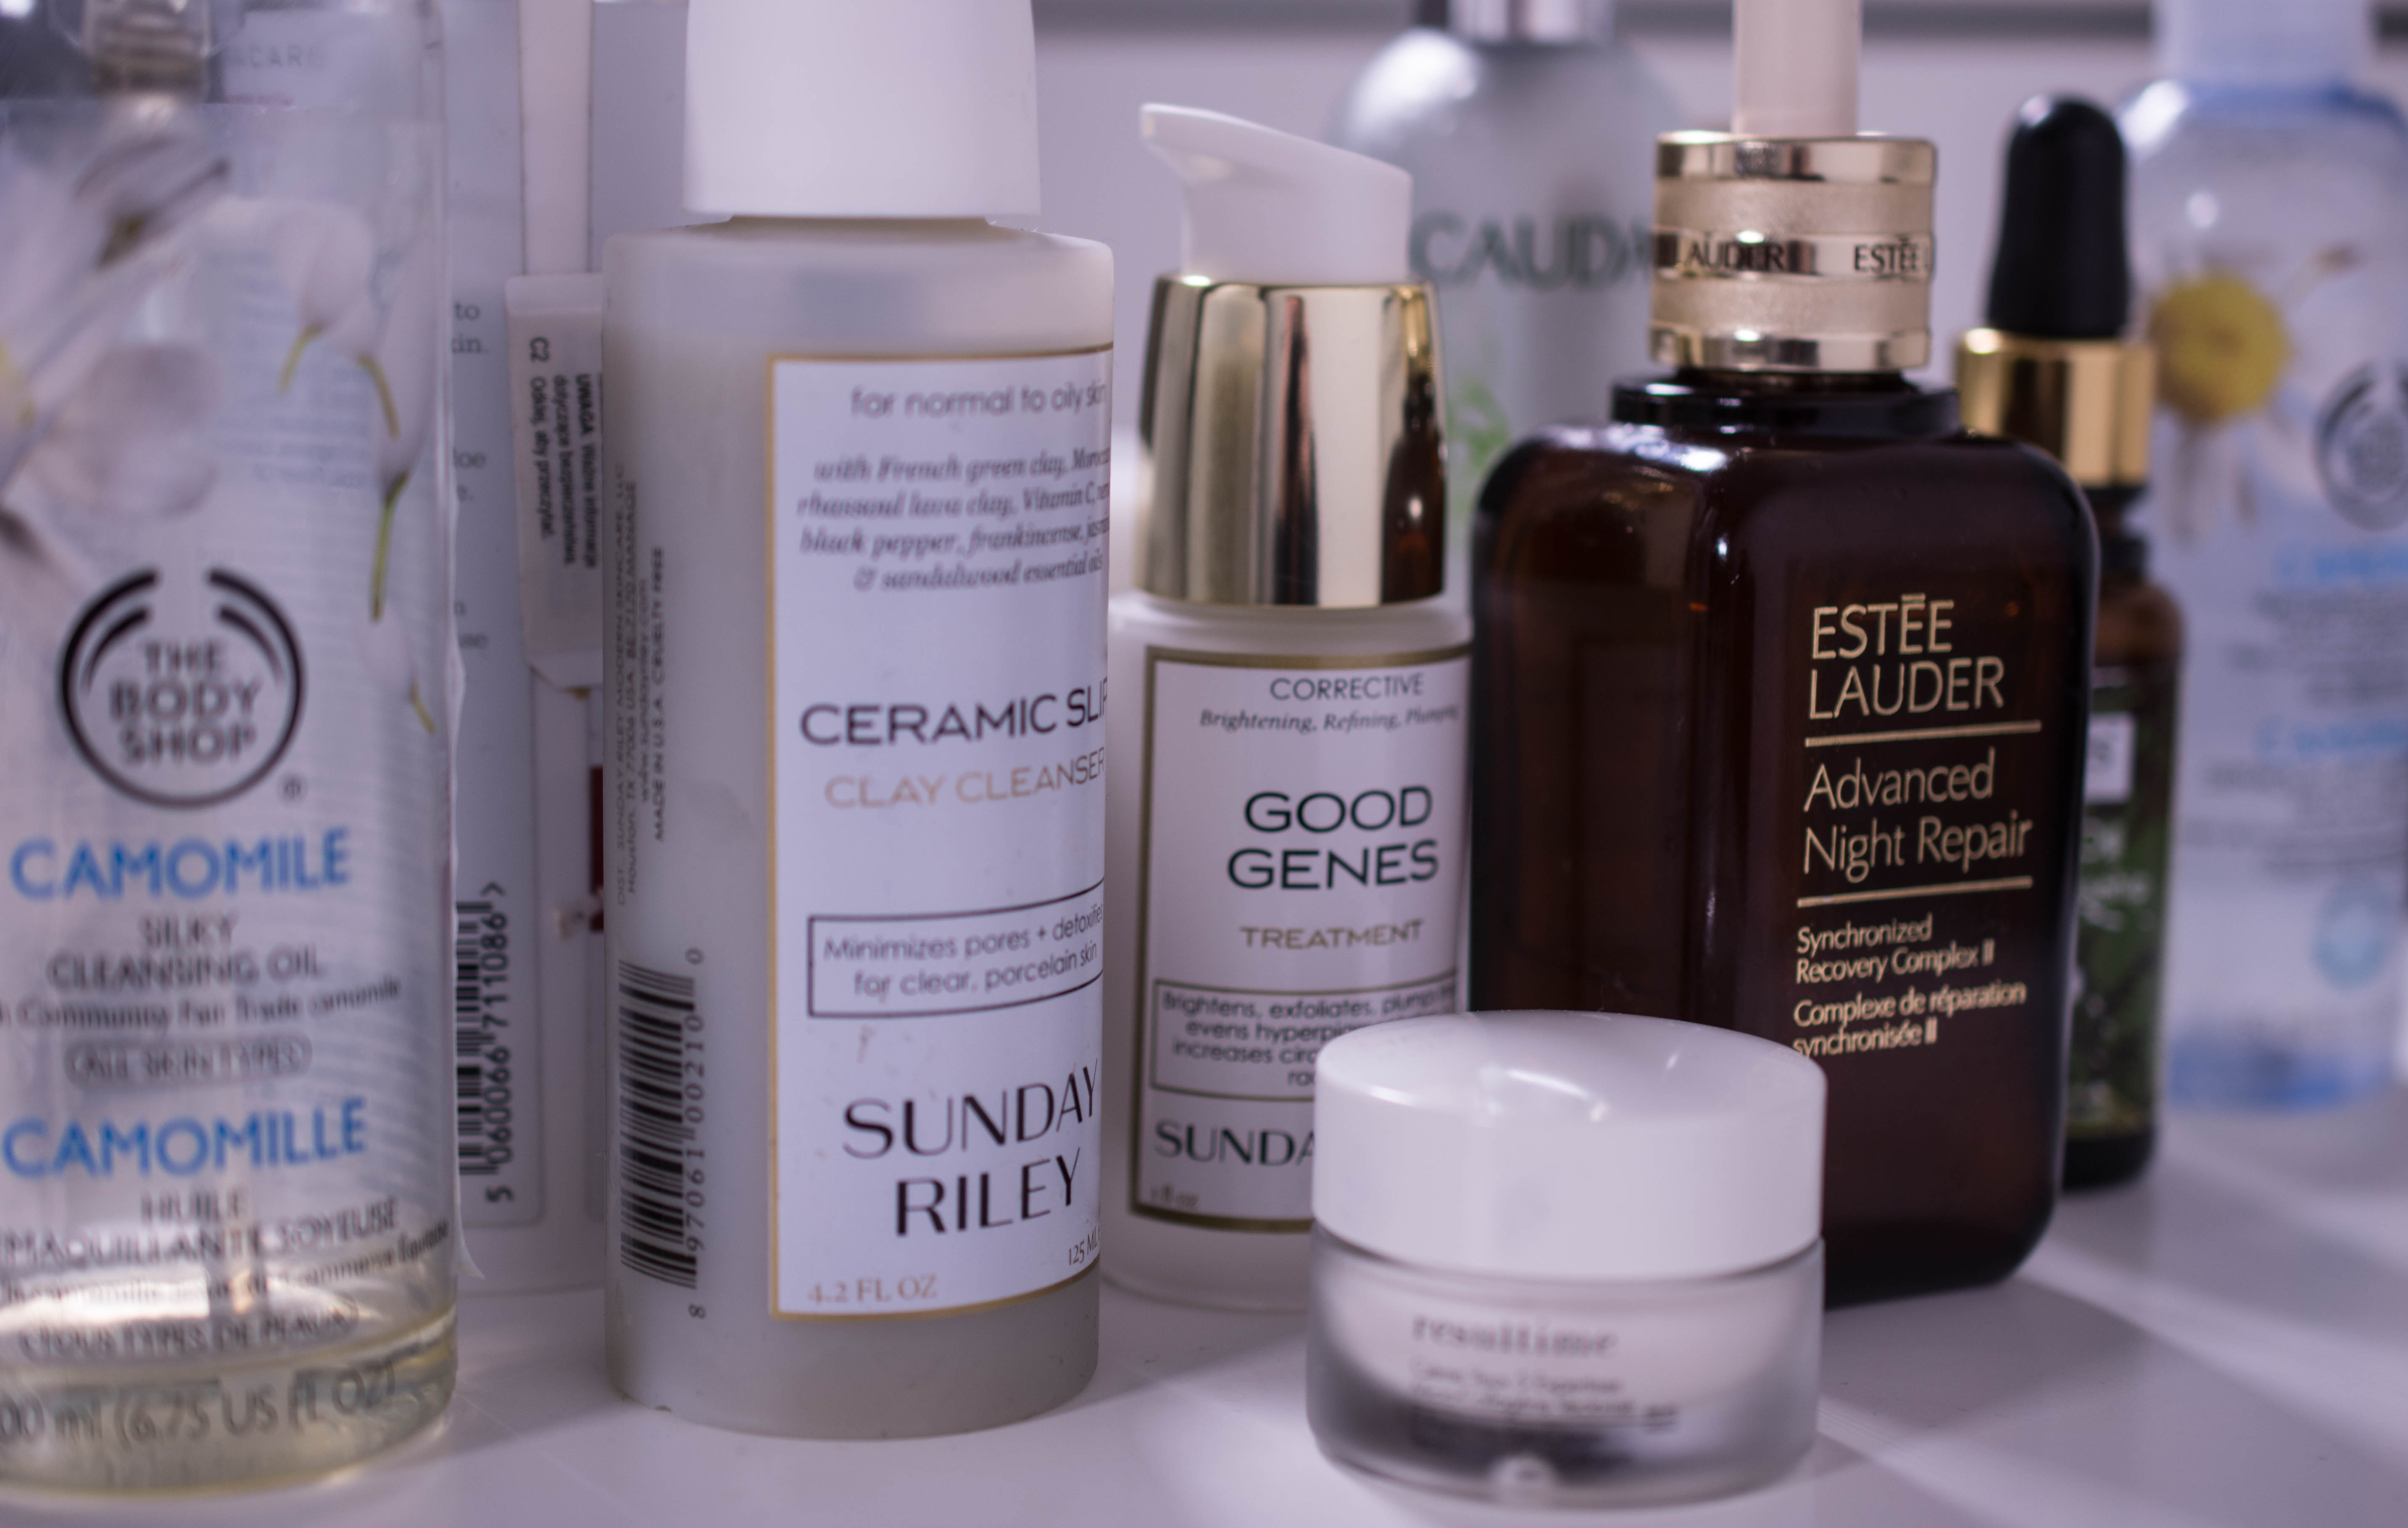 Evening skincare routine winter 2016 - some of the products